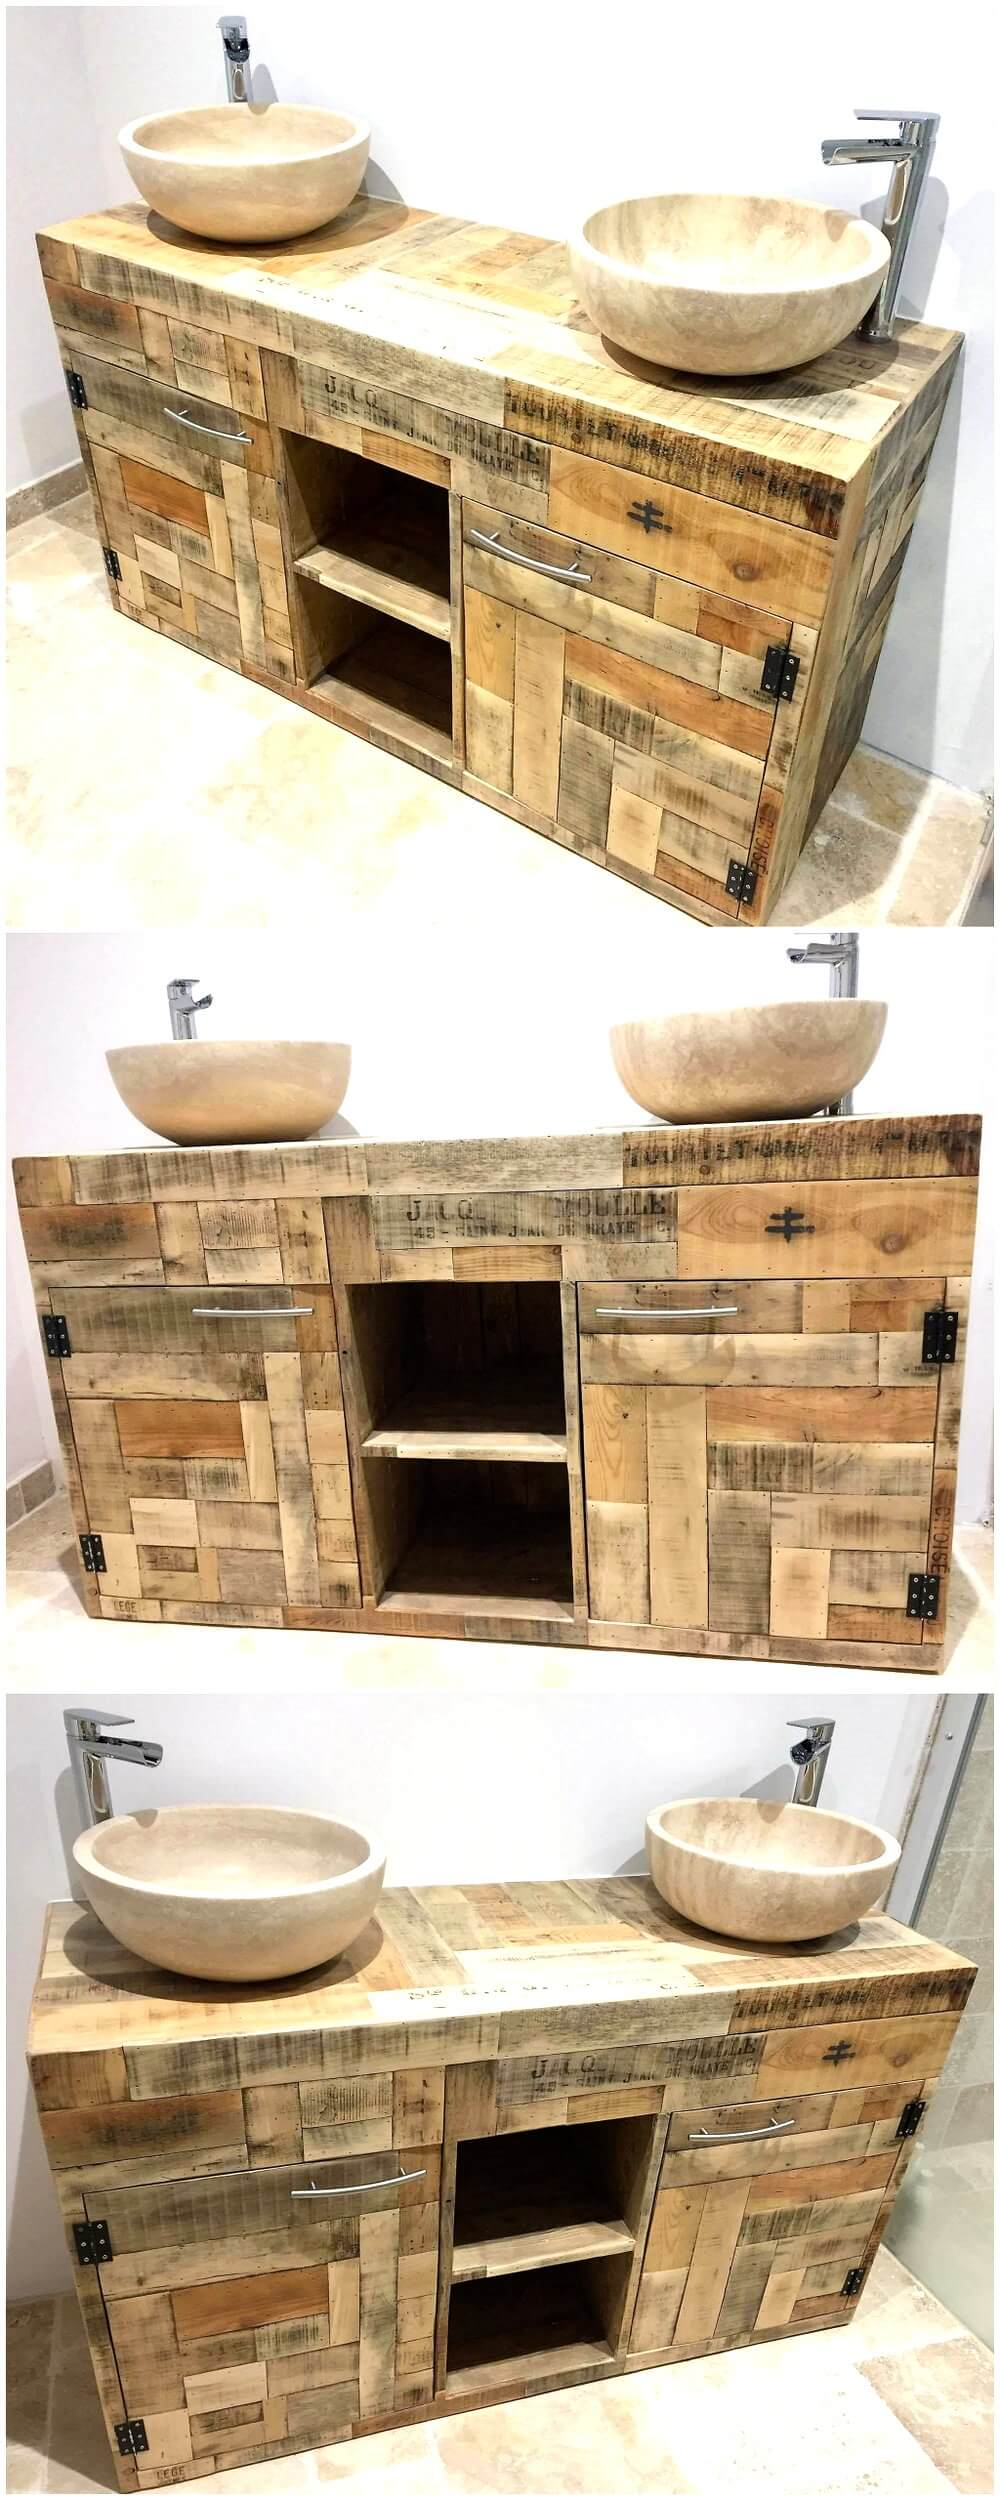 recycled wood pallets rustic sink idea pallet ideas